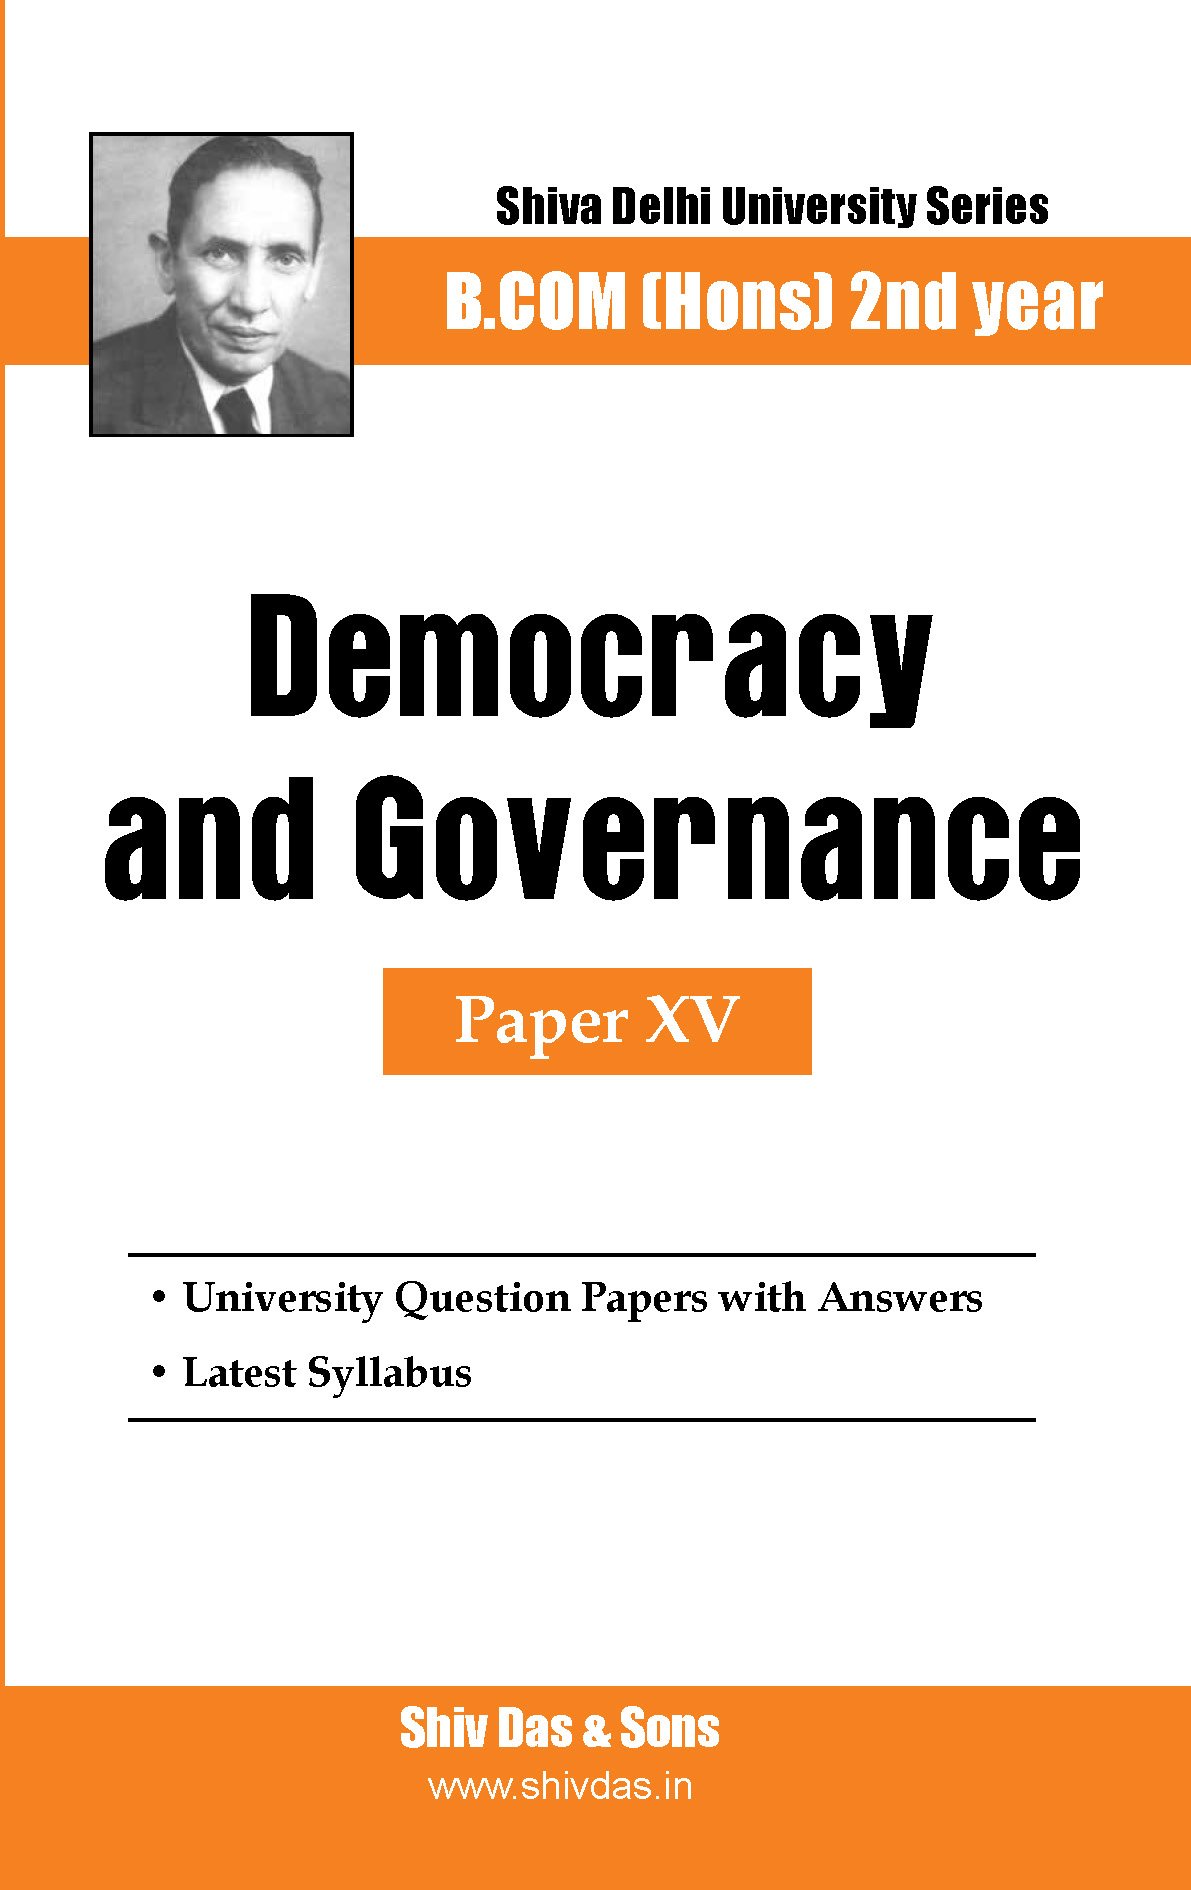 Democracy and Governance for B.Com Hons SOL/External 2nd Year